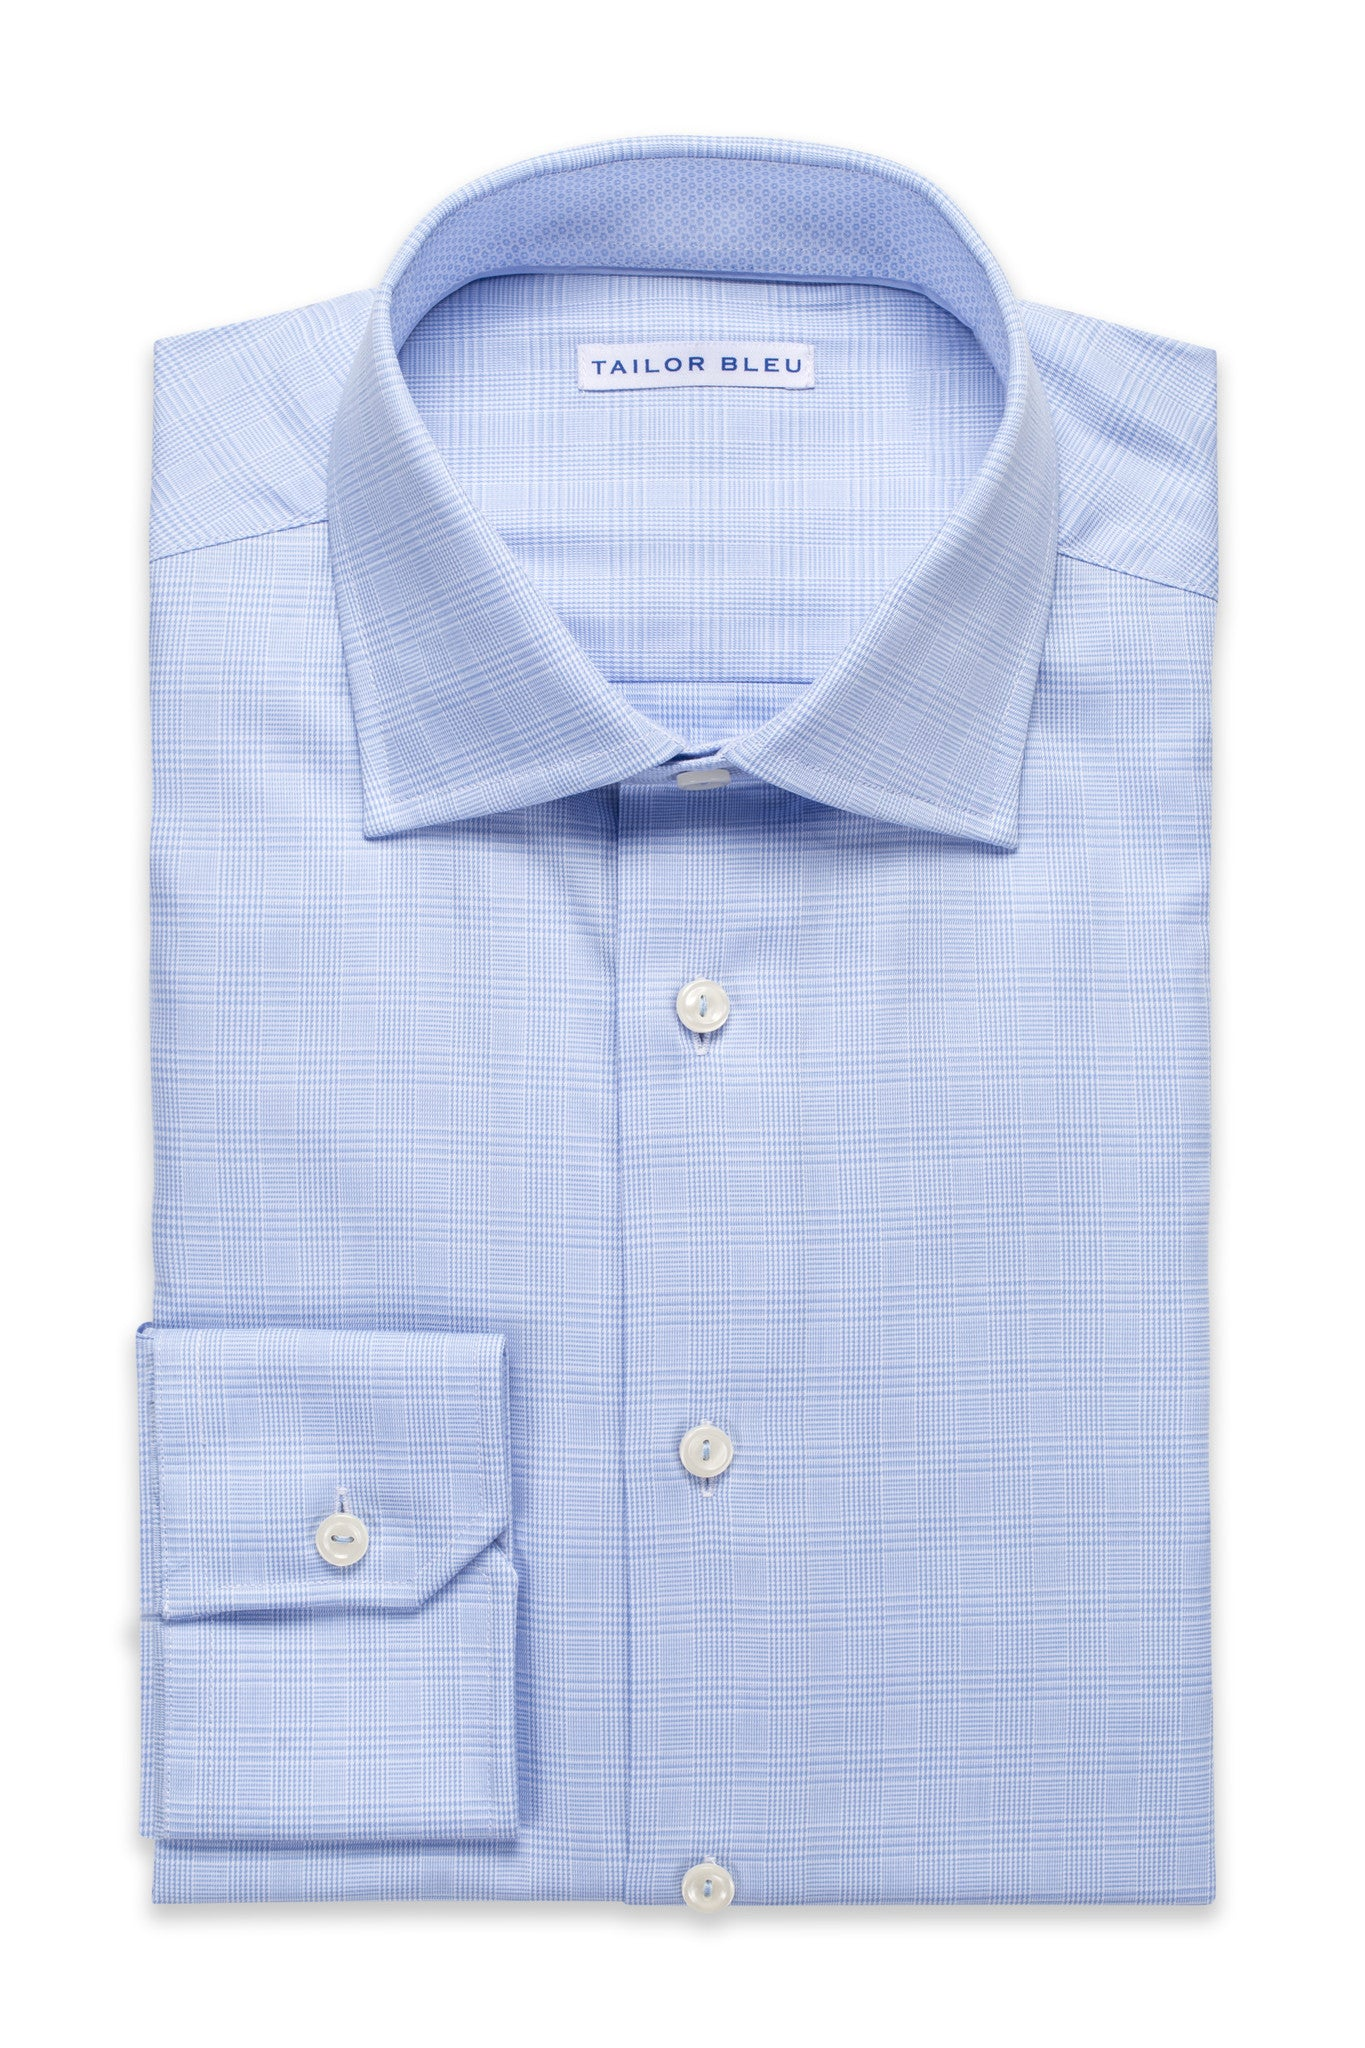 Houndstooth Plaid Shirt - Round Spread Collar- Light Blue